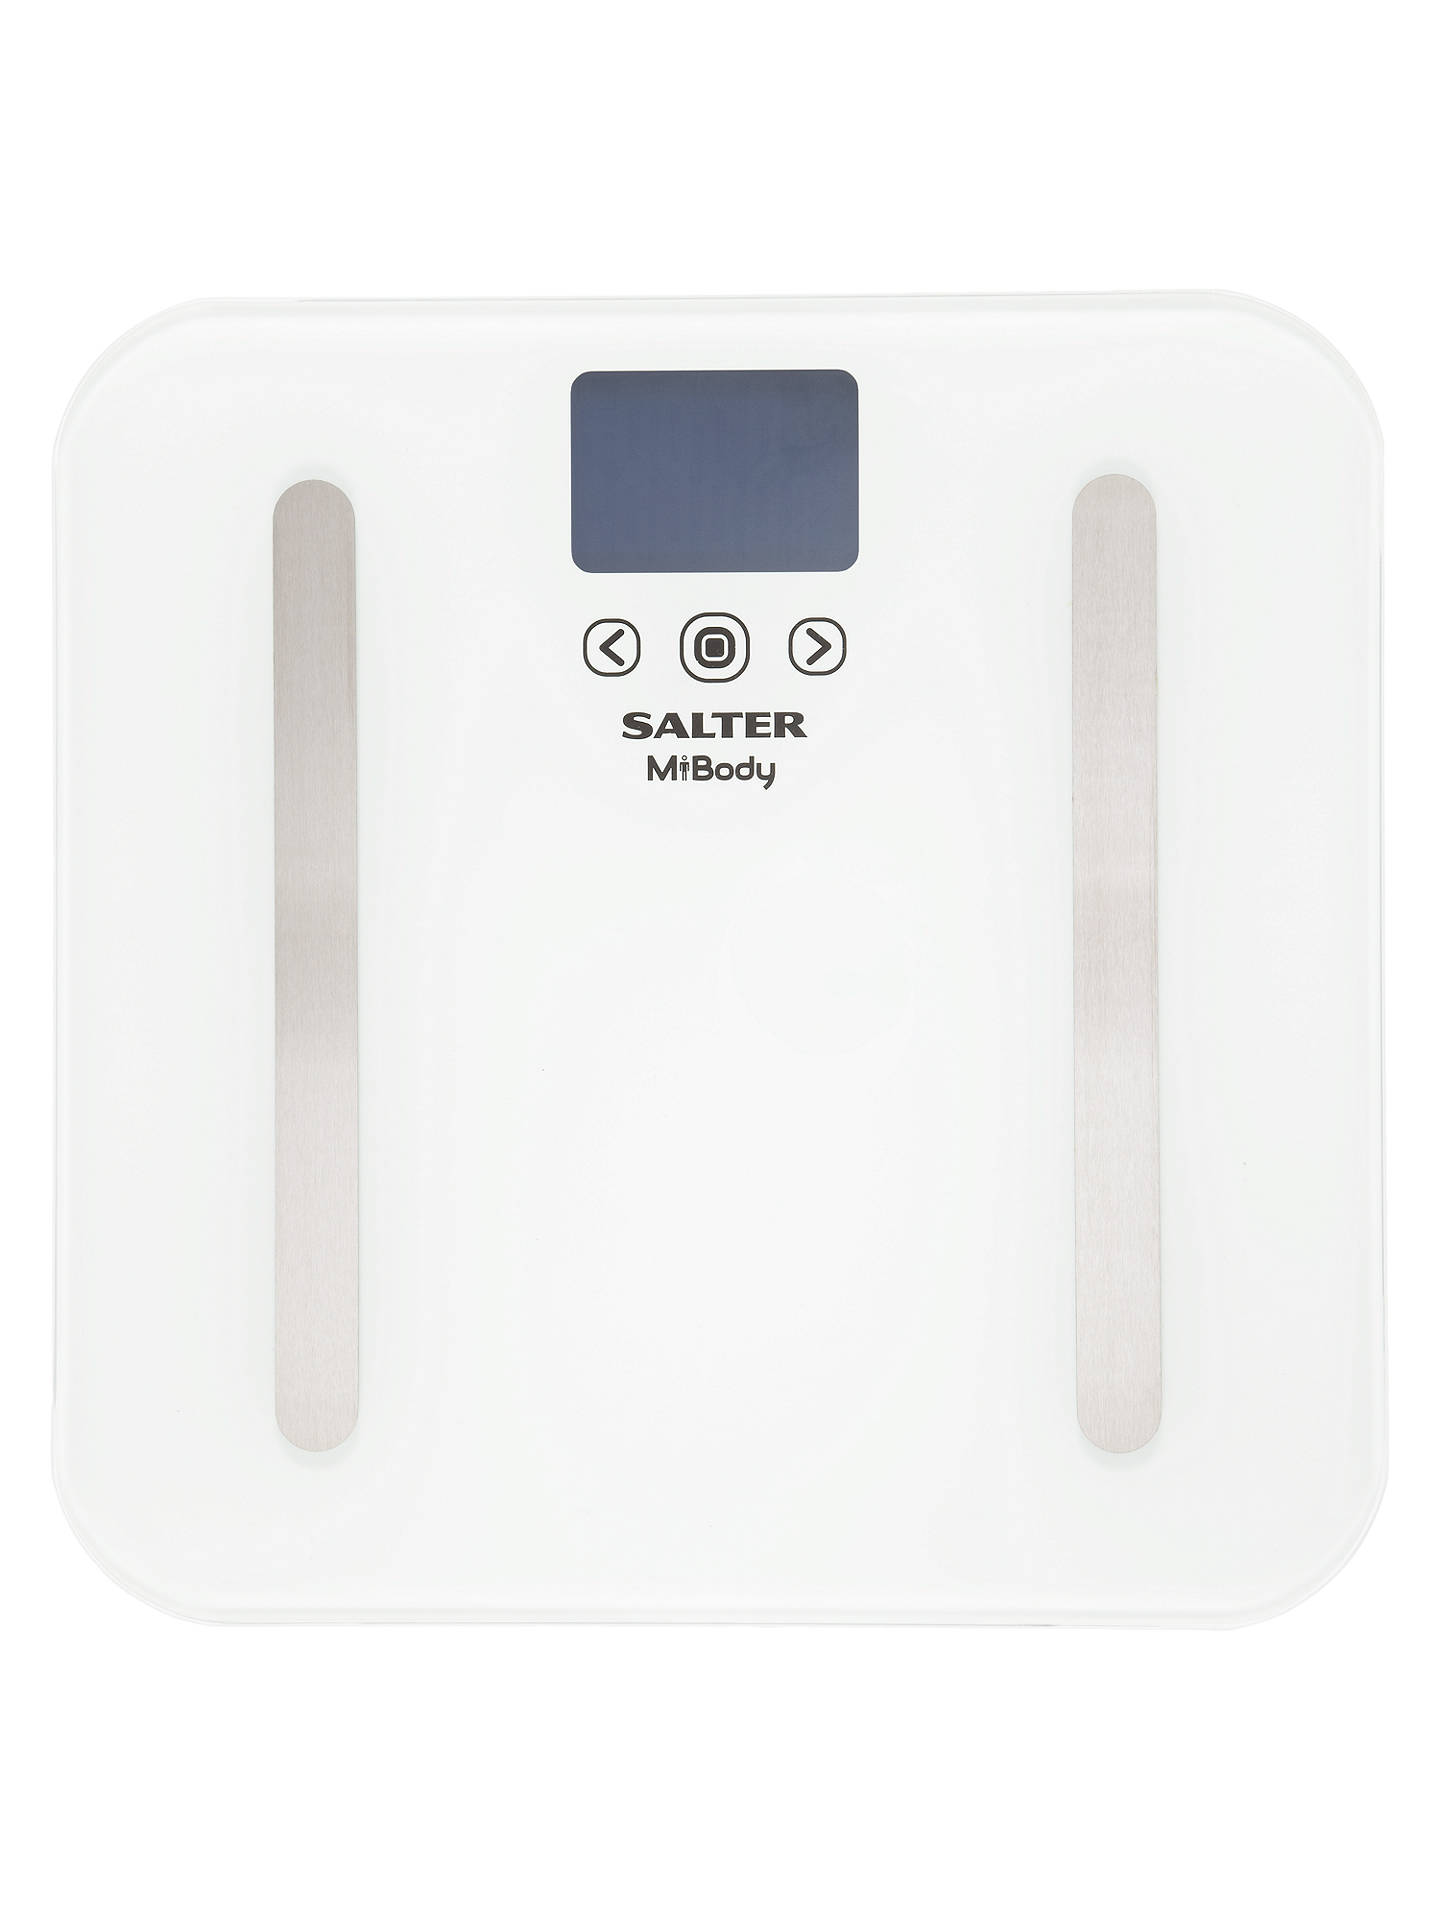 Salter Mibody Analyser Bathroom Scale At John Lewis Partners